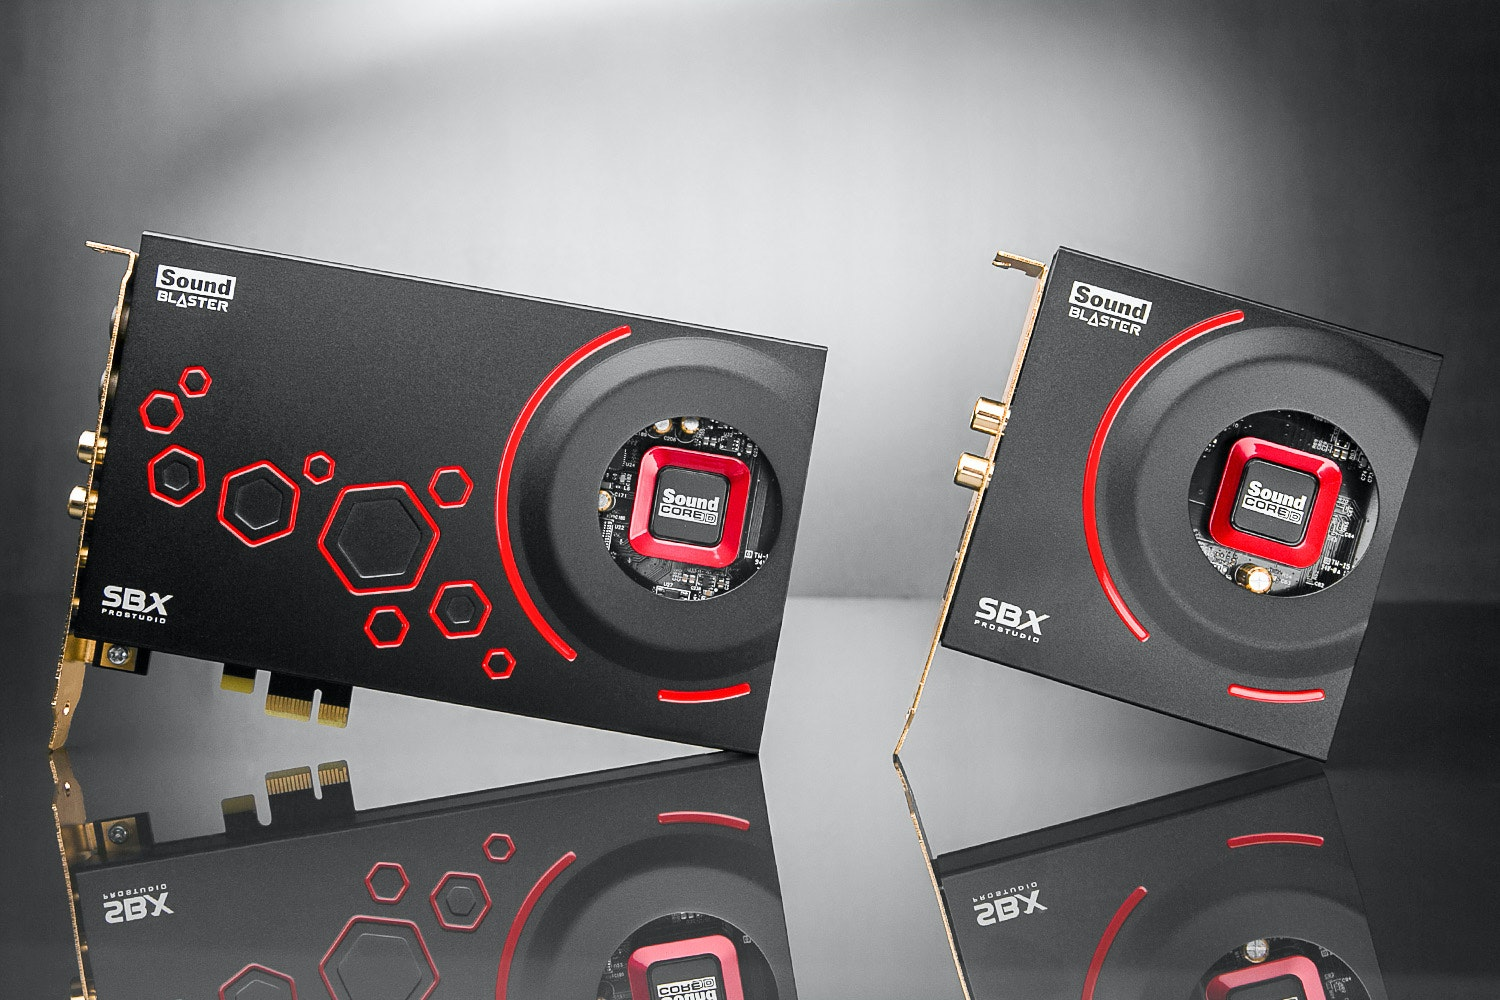 Creative Sound Blaster ZxR Sound Card